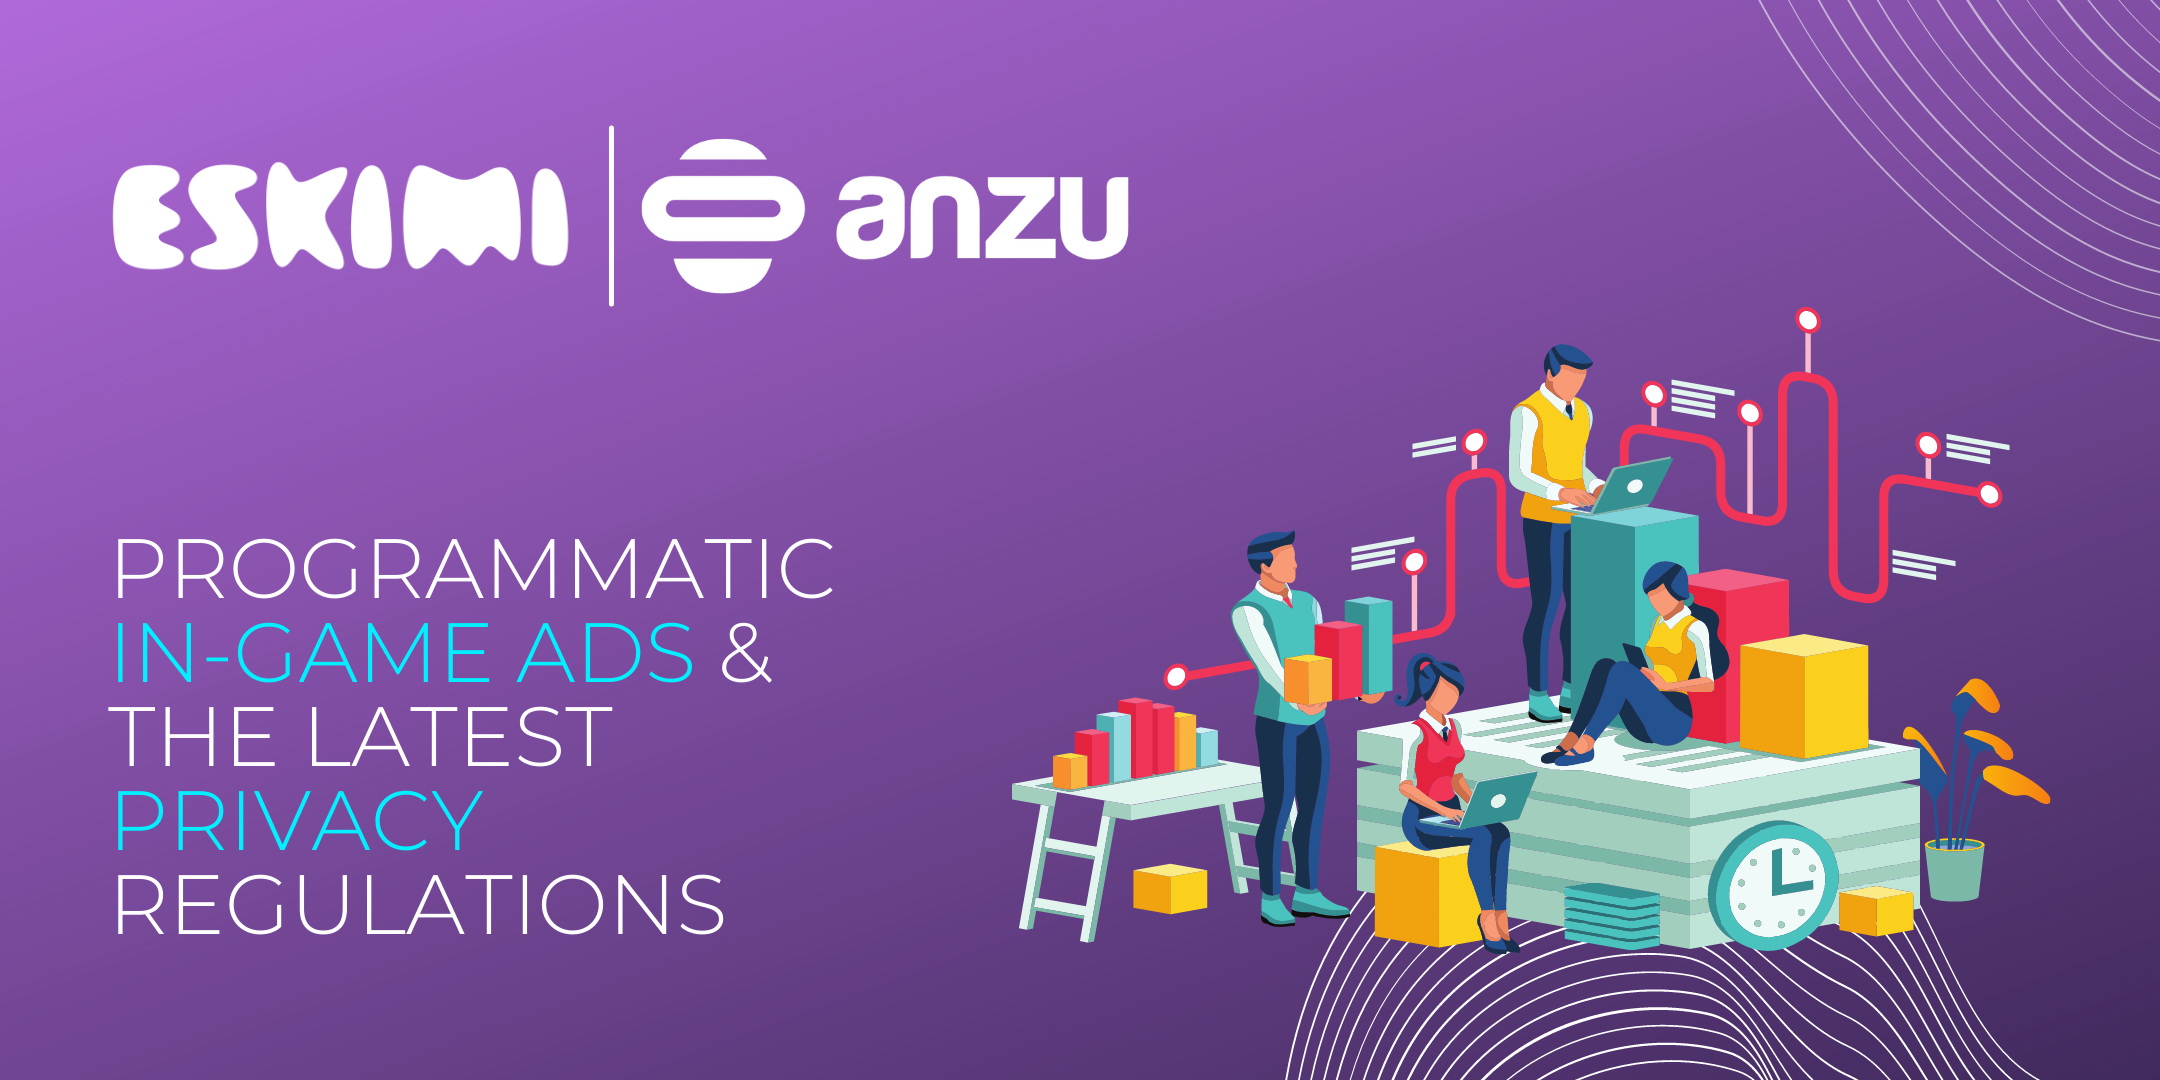 Eskimi & Anzu Talk Programmatic In-Game Ads, the Latest Privacy Regulations, and What Their New Partnership Means for Advertisers